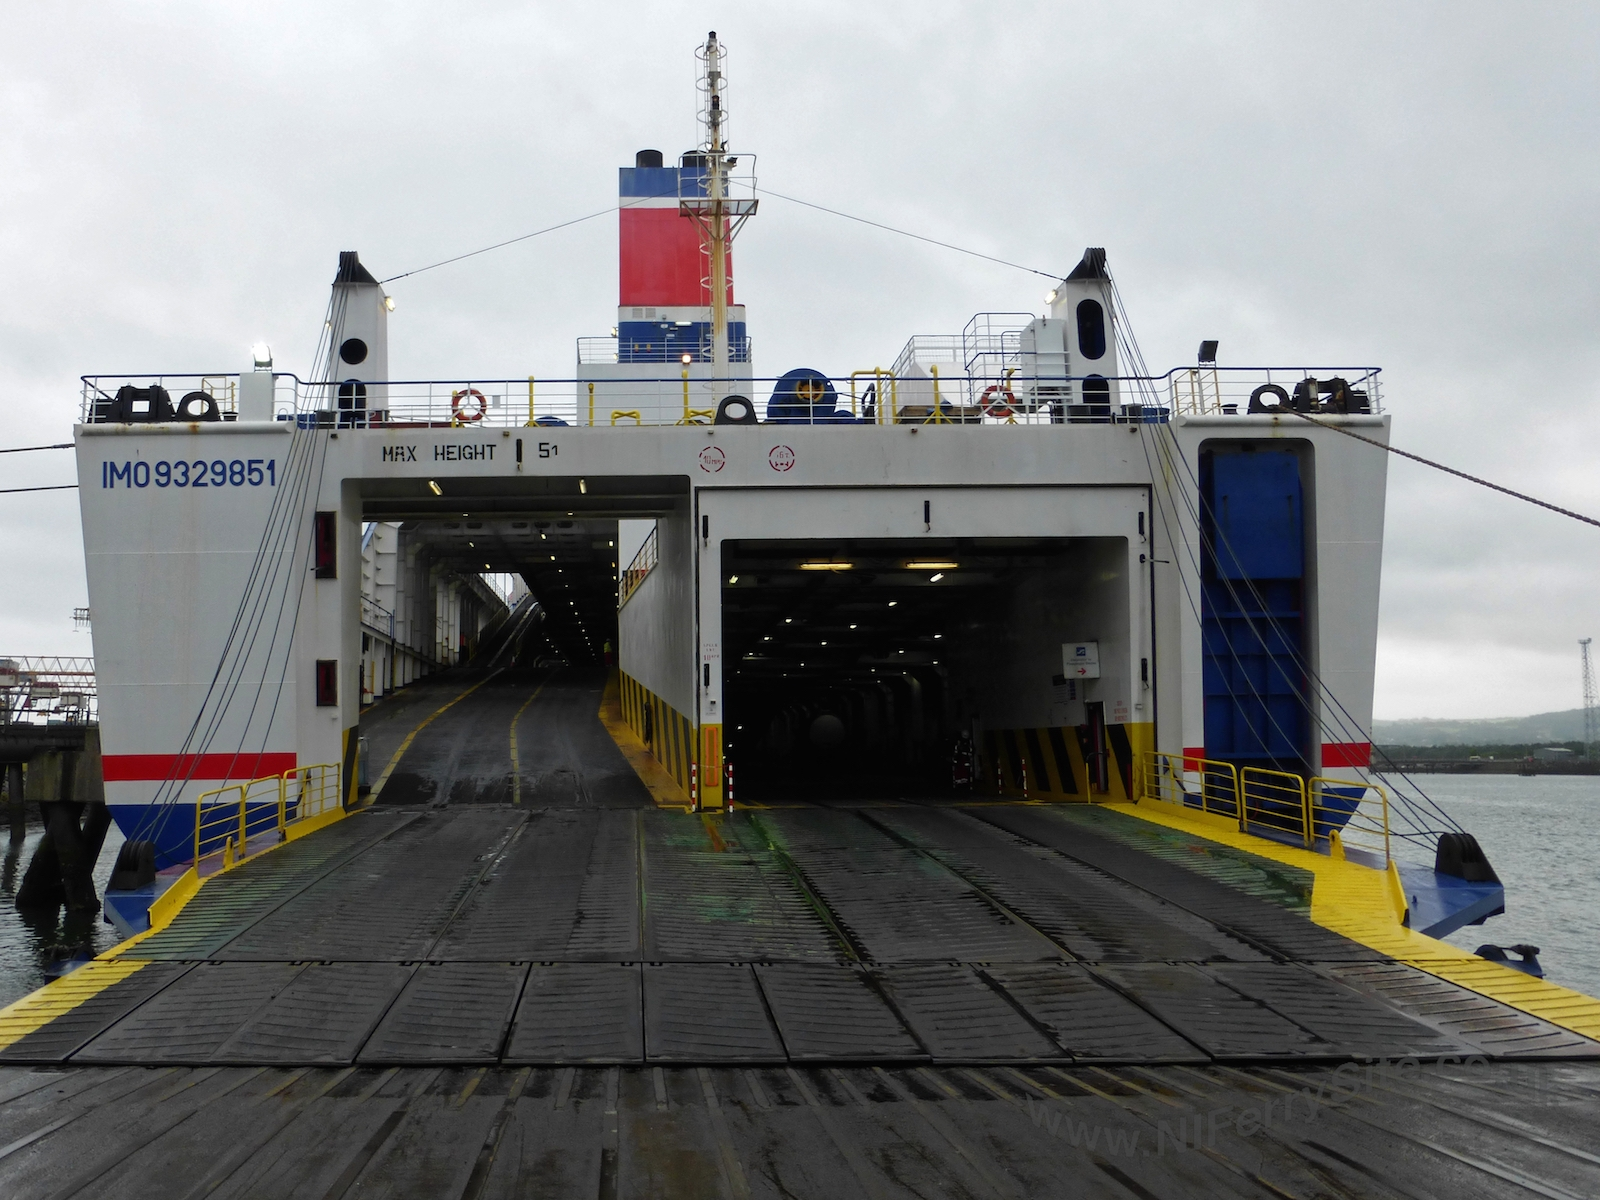 Stena Mersey stern view with ramps lowered, Victoria Terminal 2, Belfast. ©Steven Tarbox